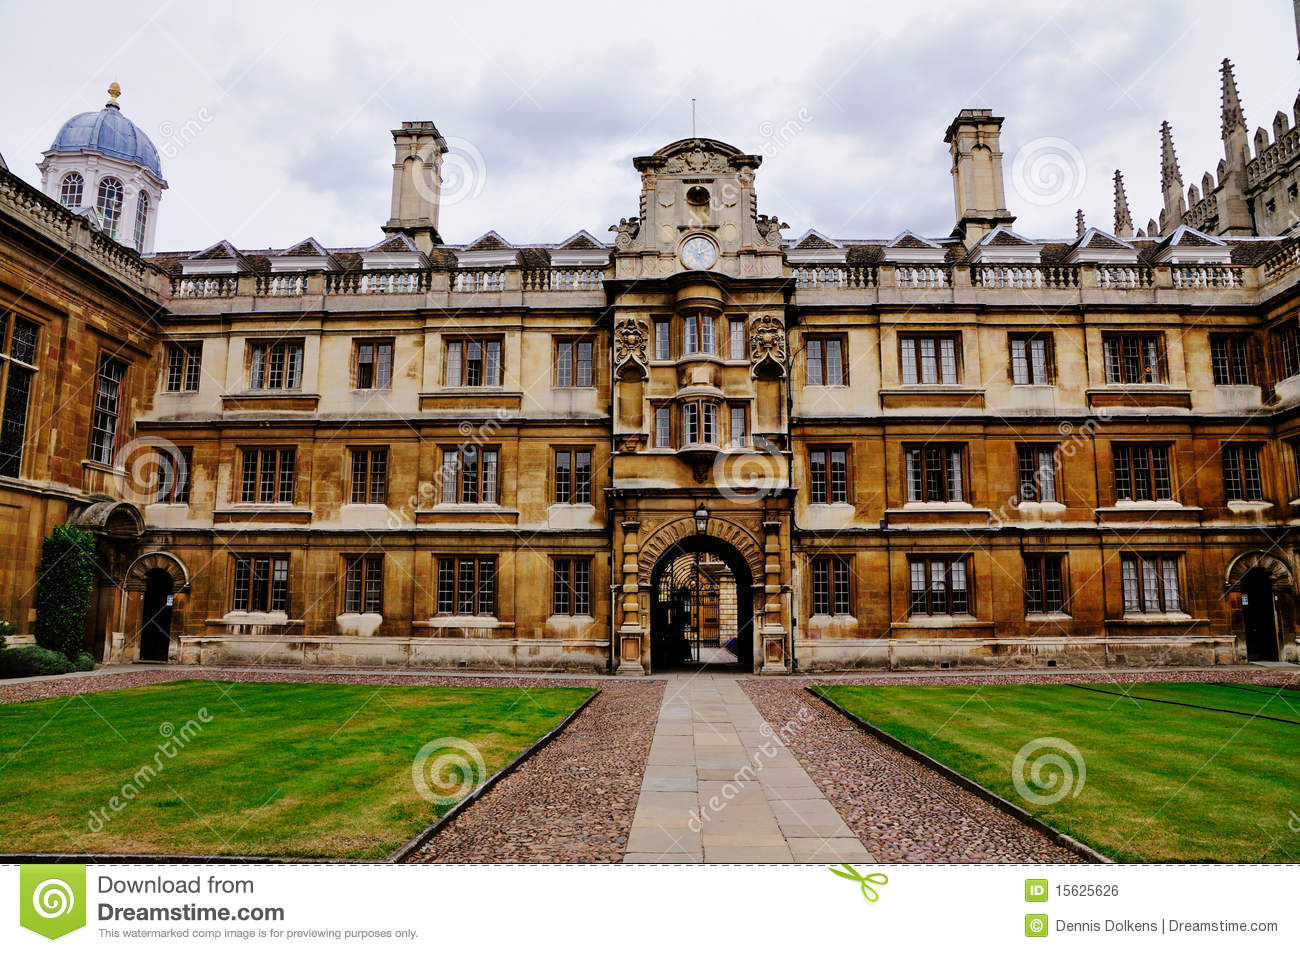 Environmental Science clare college cambrdige